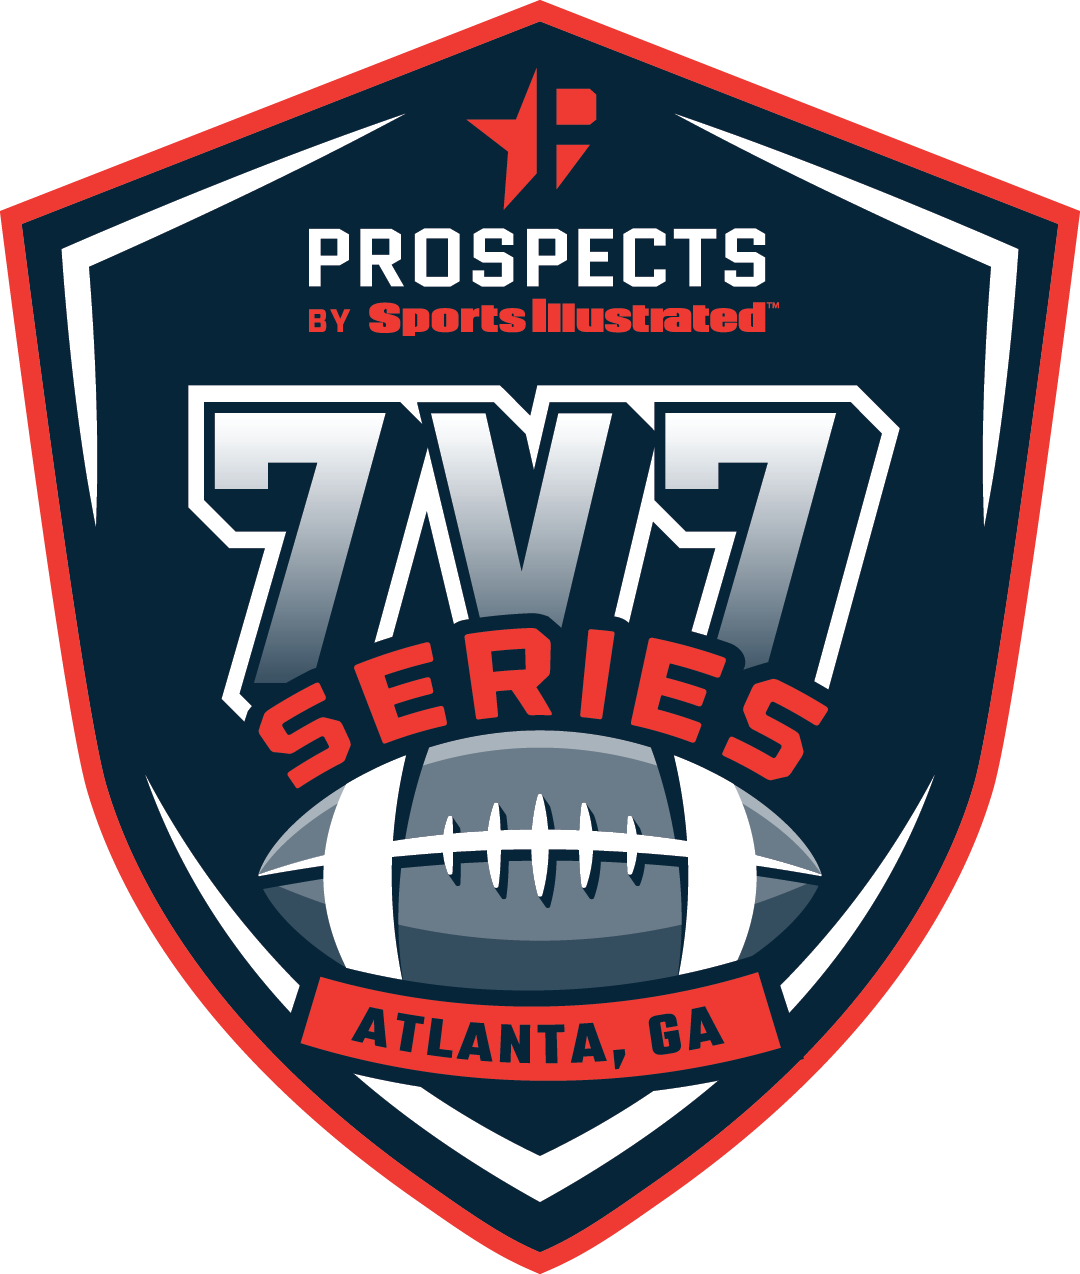 PSI 7 v 7 Series - Atlanta logo